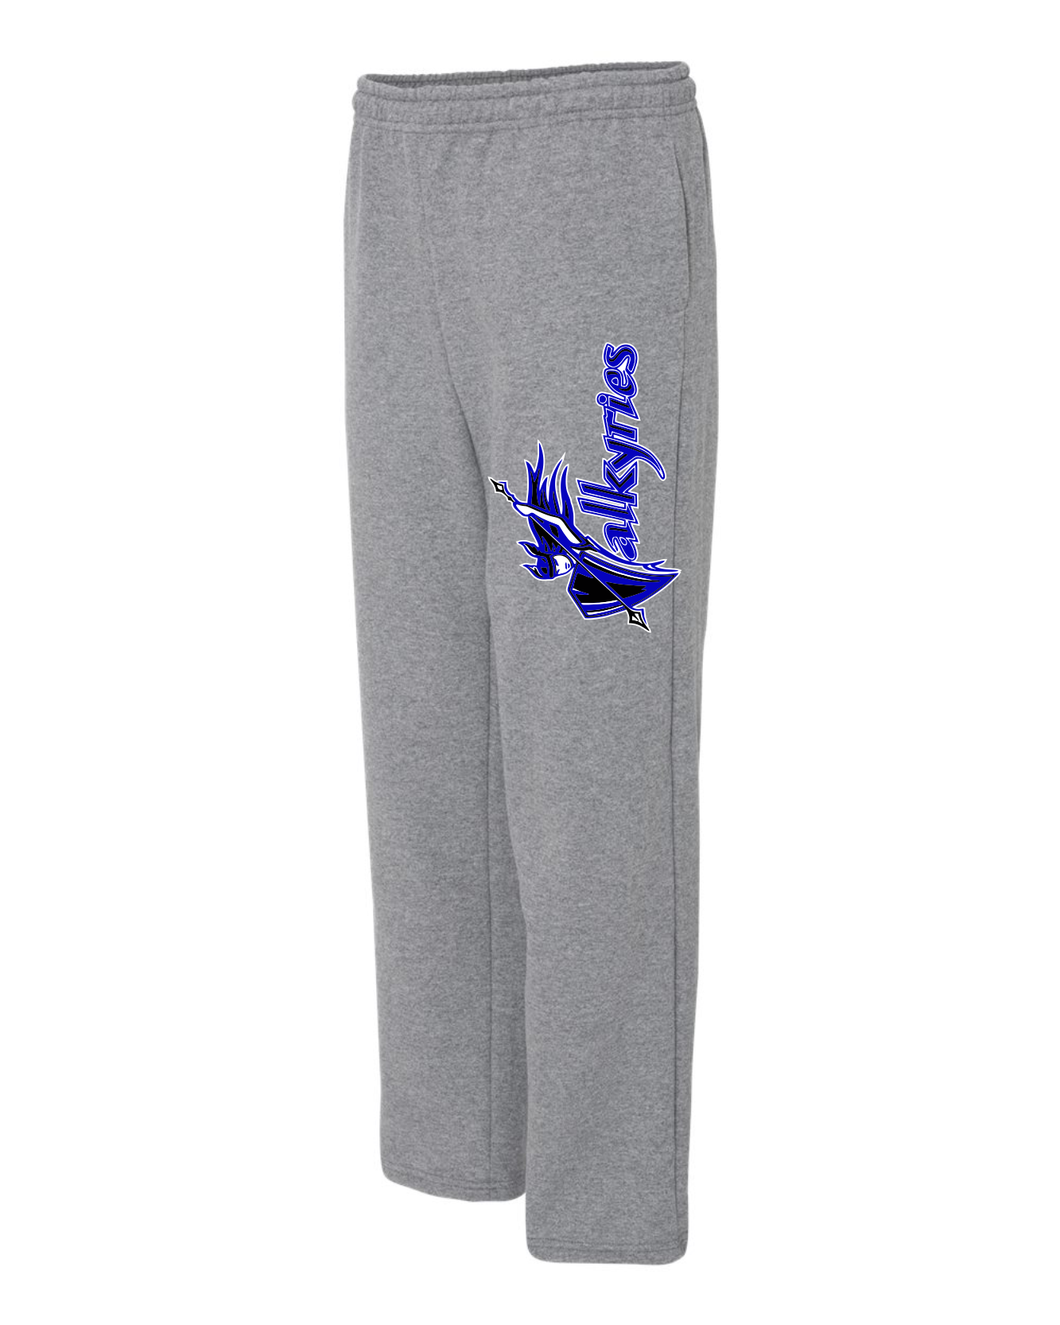 River City Valkyrie Open Bottom Sweatpants